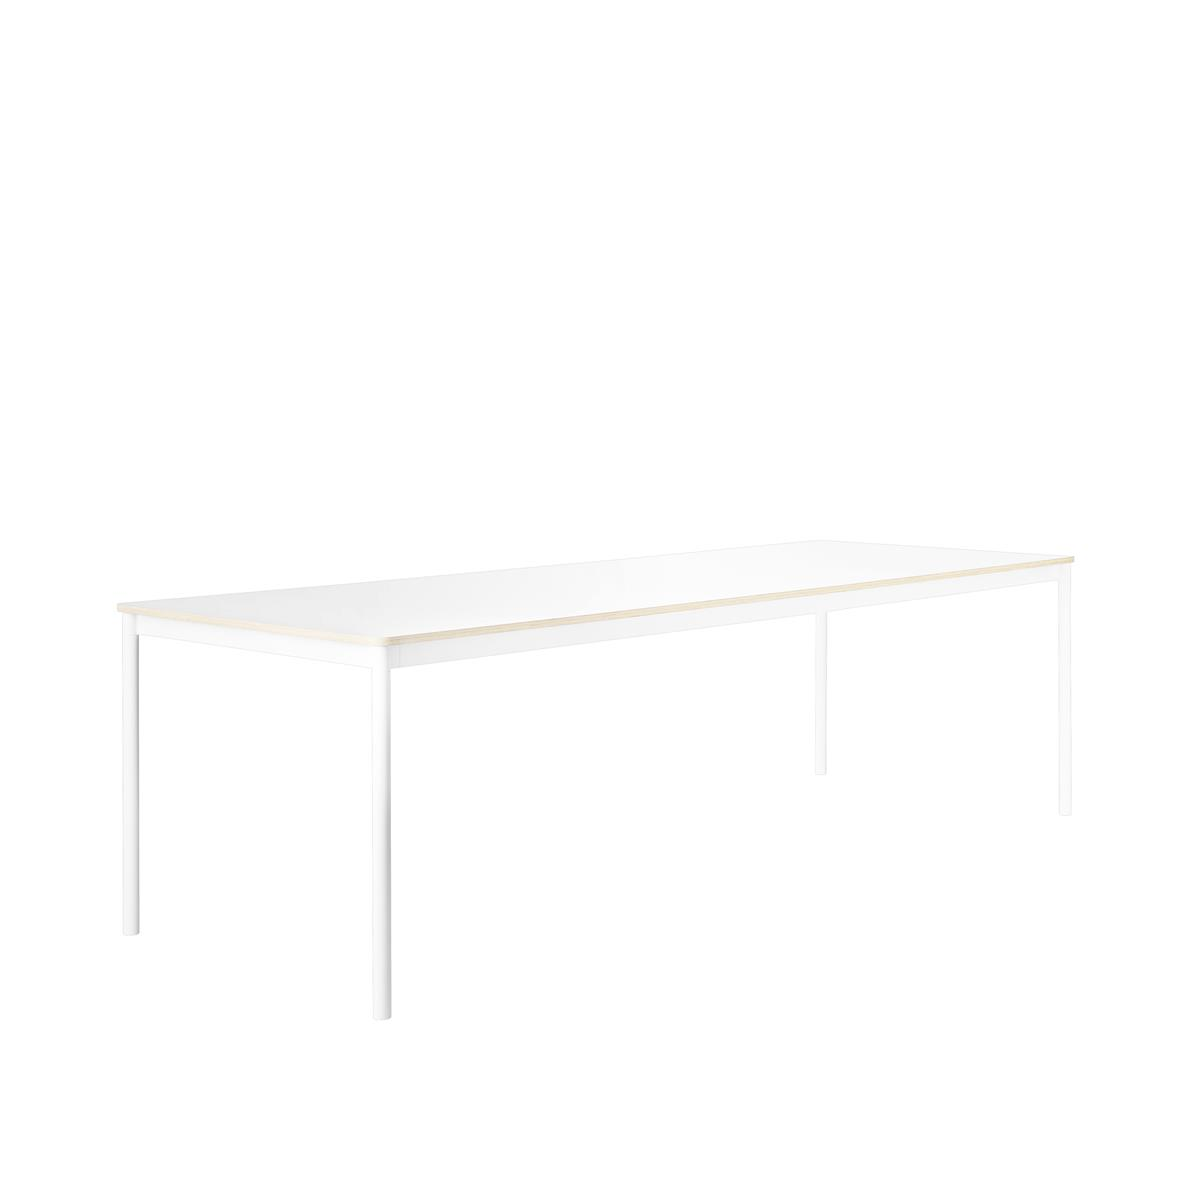 Base Table / 250 X 110 Laminate - Plywood edges